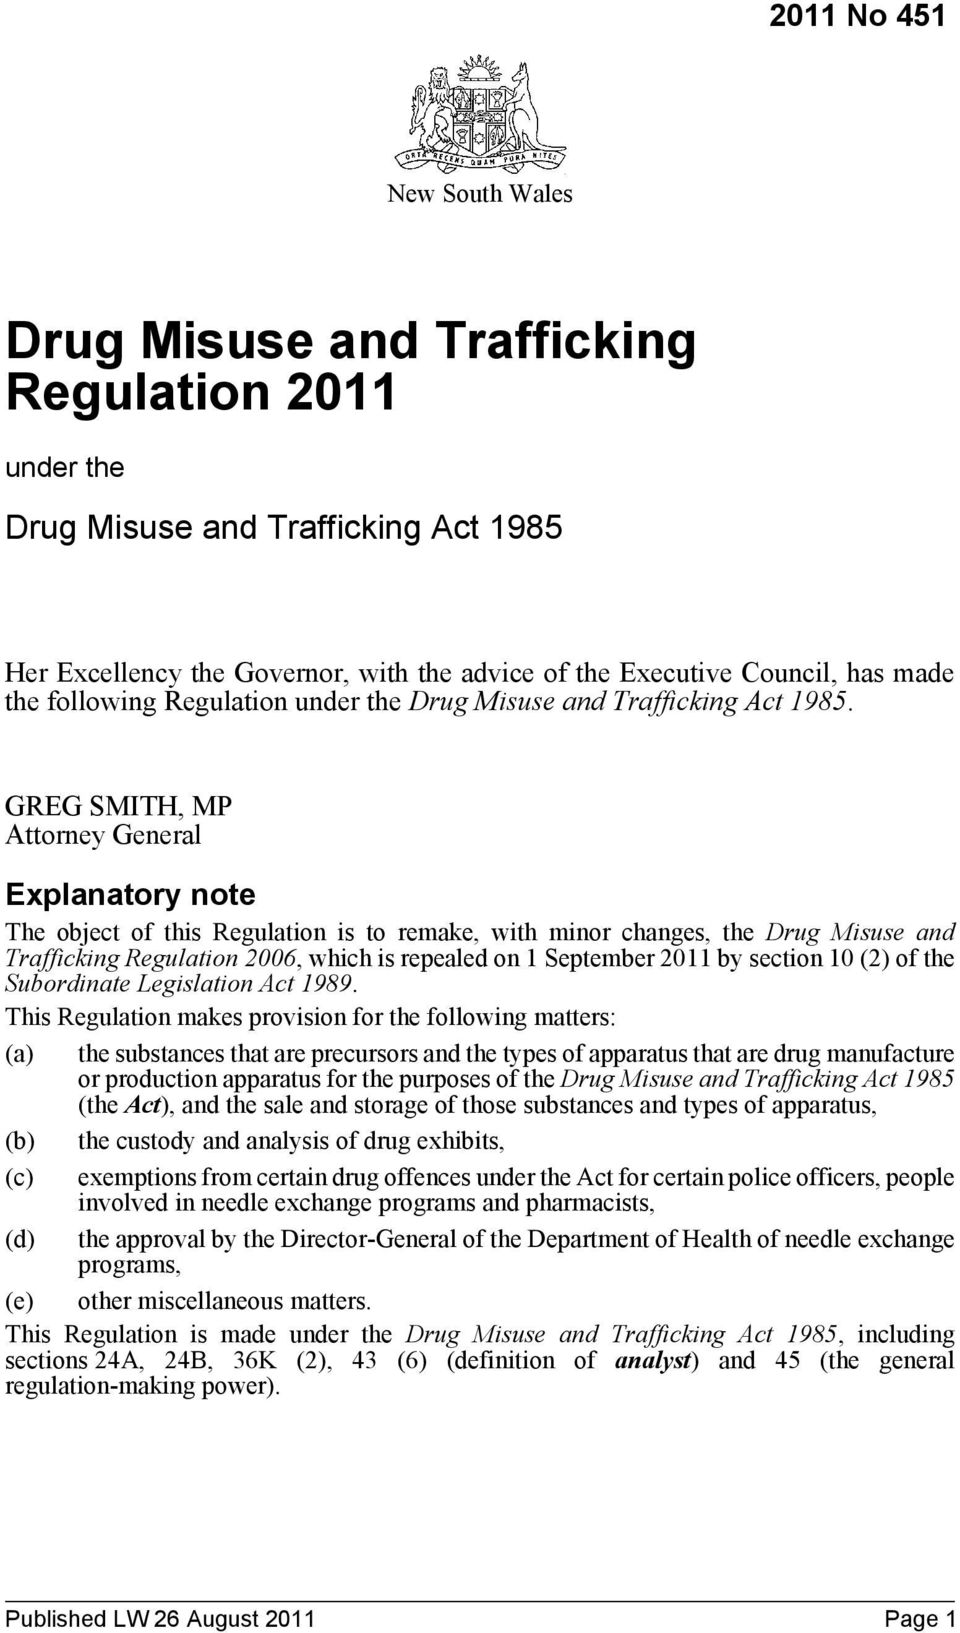 GREG SMITH, MP Attorney General Explanatory note The object of this Regulation is to remake, with minor changes, the Drug Misuse and Trafficking Regulation 2006, which is repealed on 1 September 2011